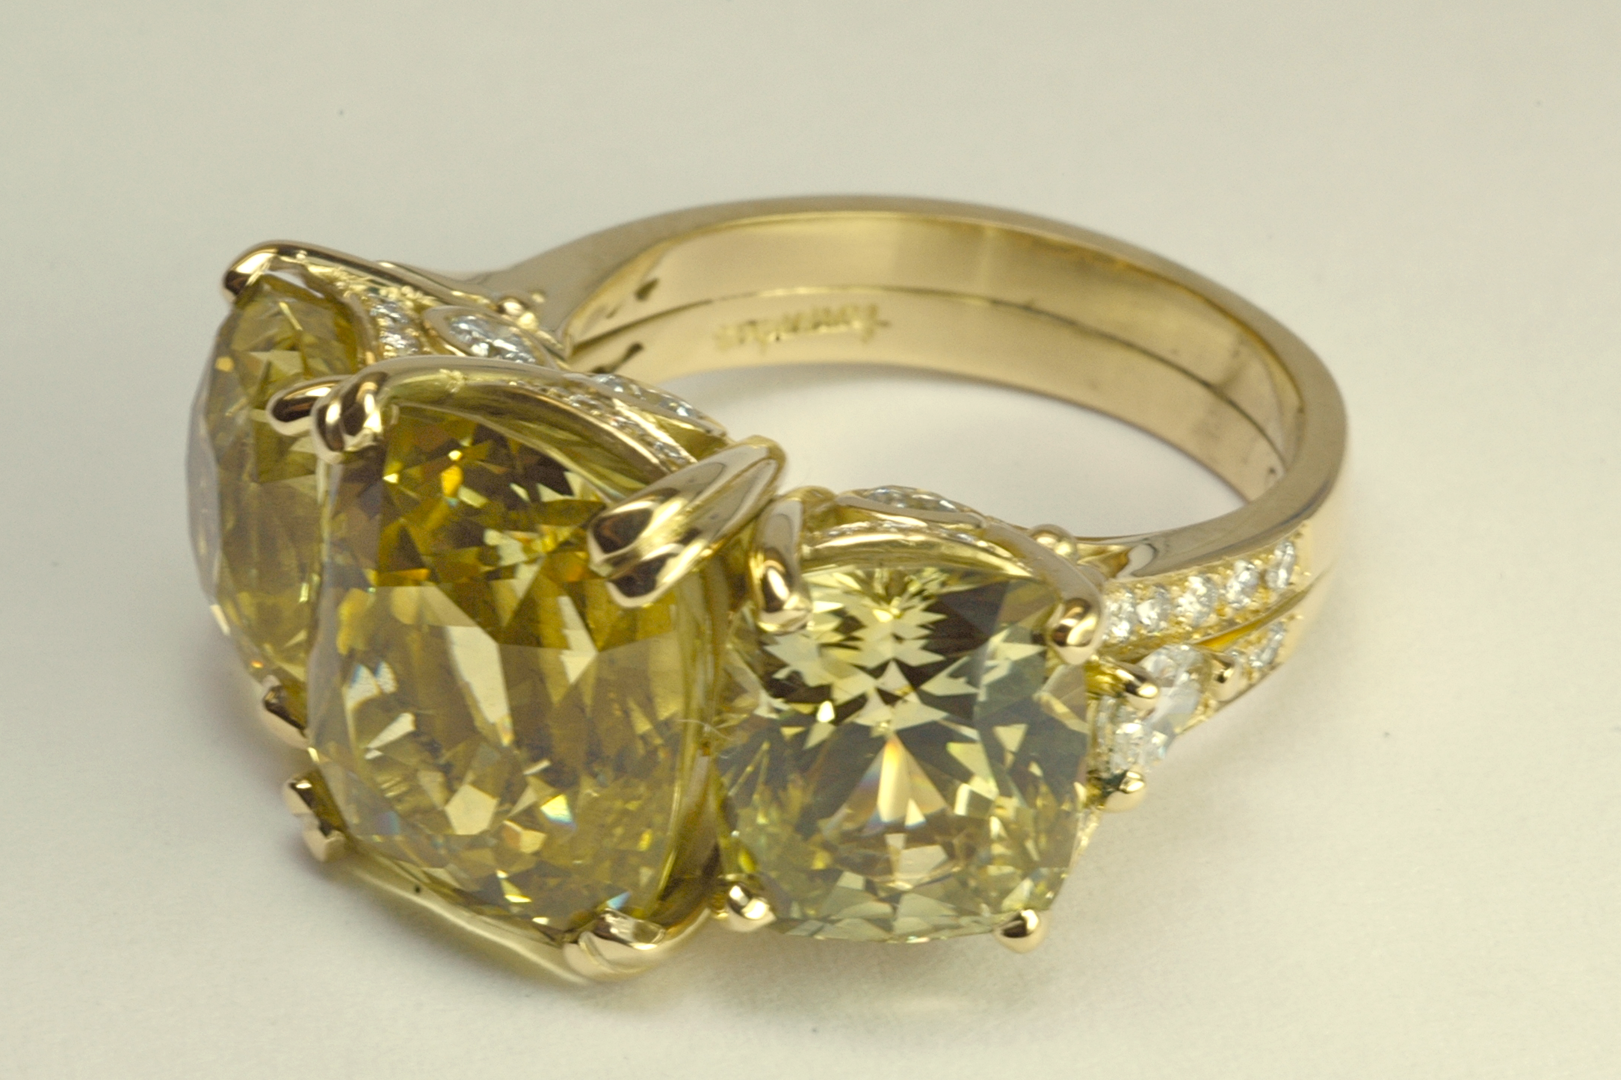 Yellow sapphire suite, three stone ring in 18KT yellow gold with diamond accents